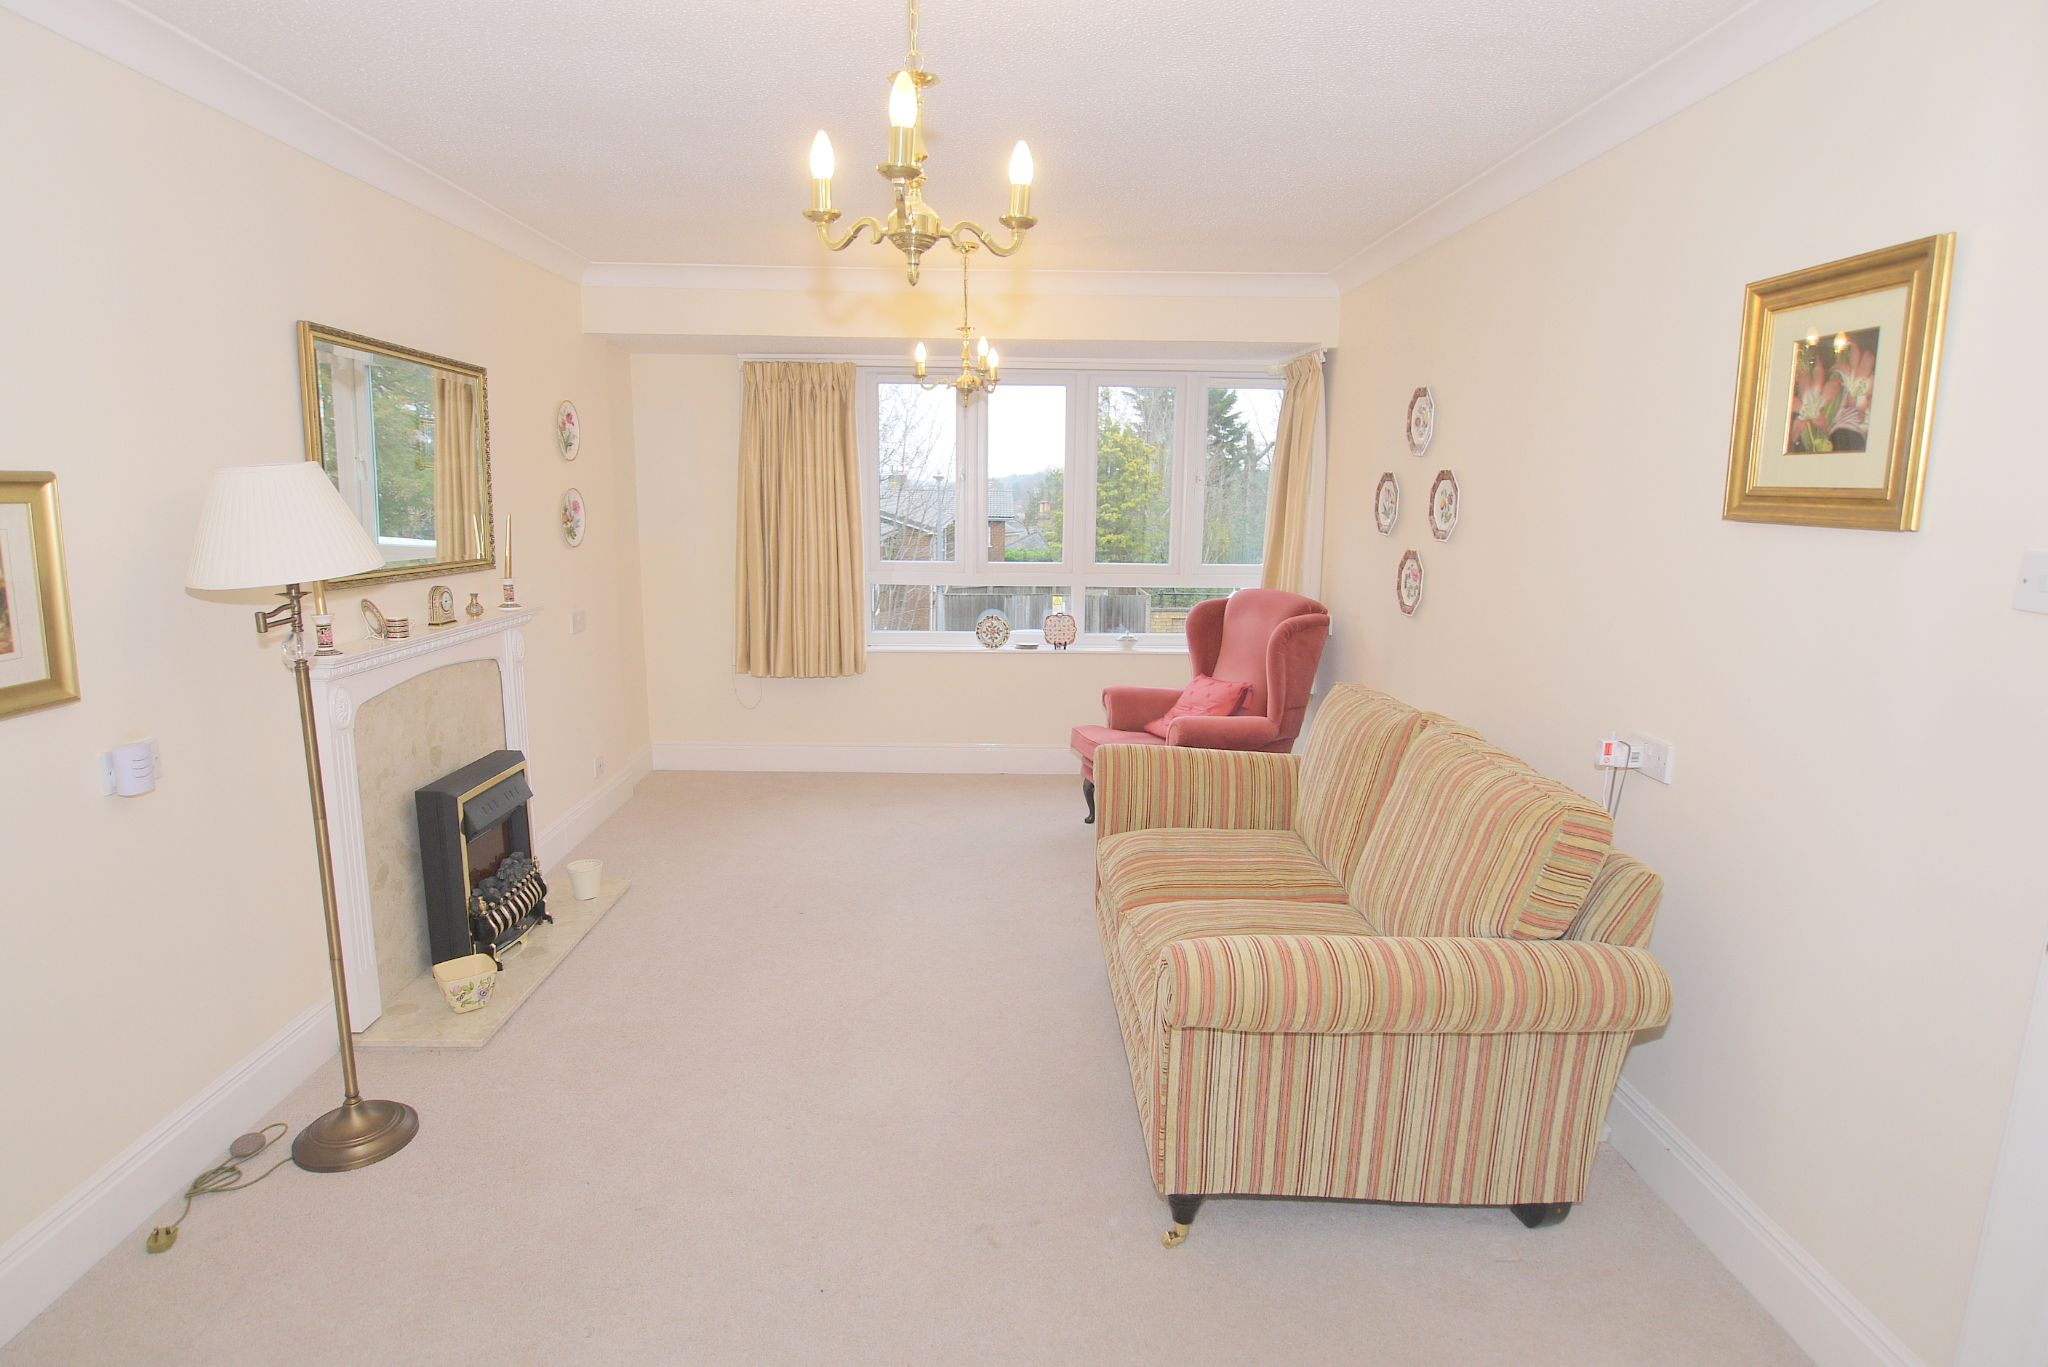 2 bedroom apartment For Sale in Sevenoaks - Photograph 3